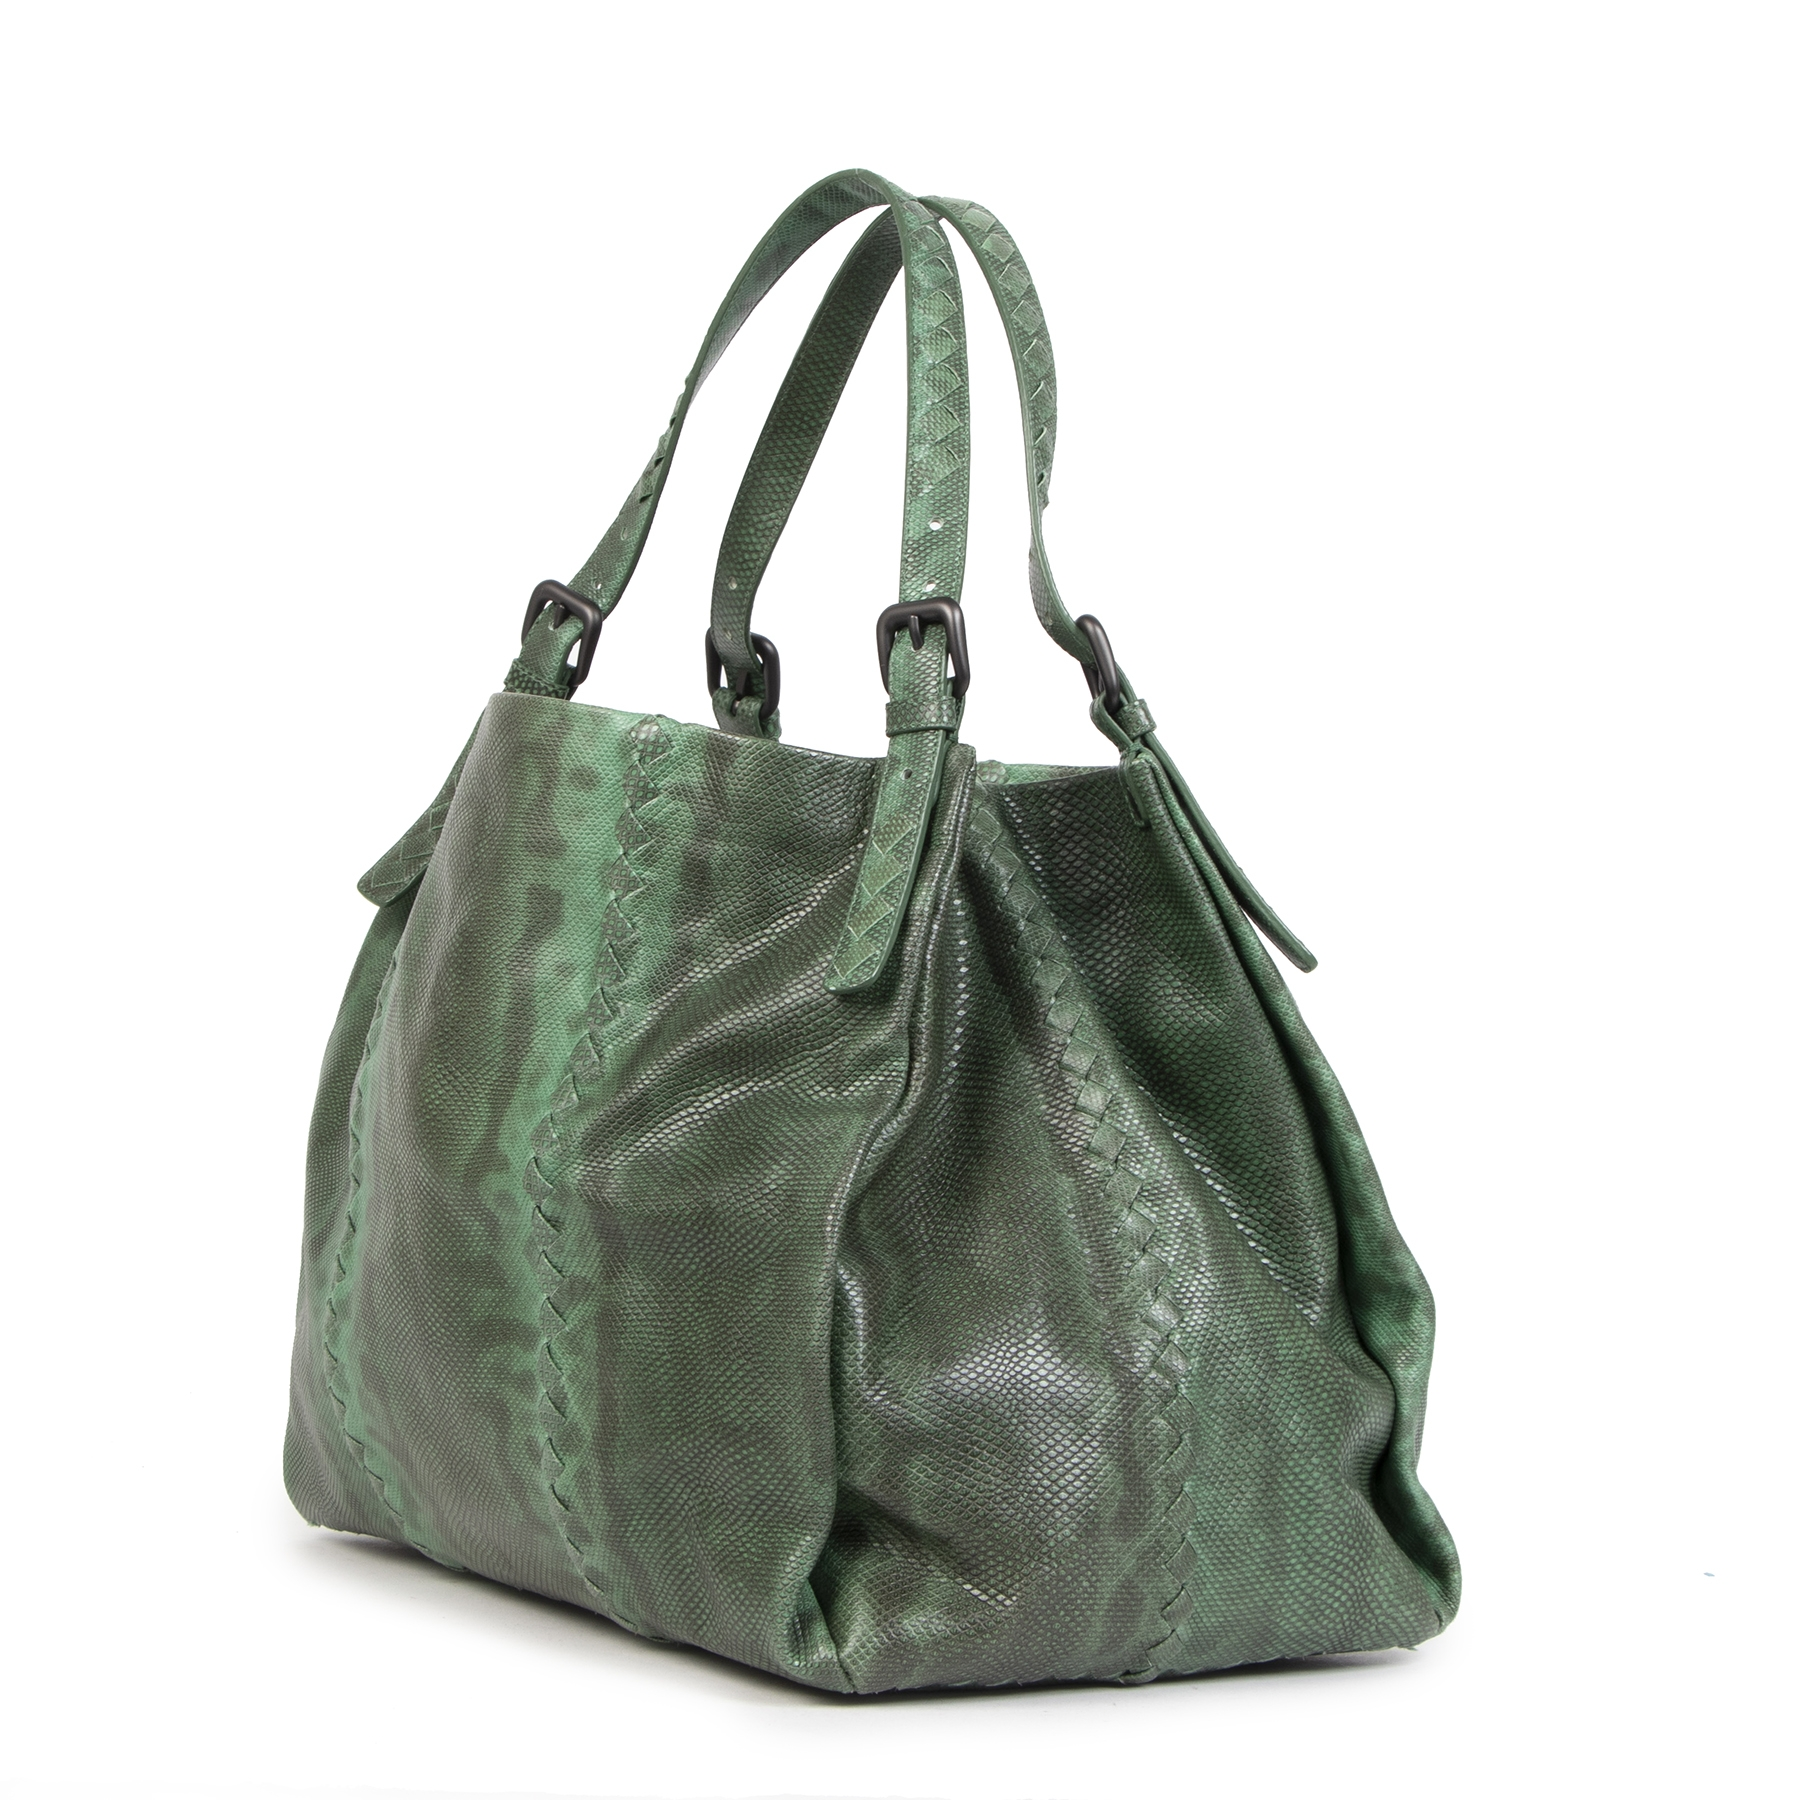 Buy authentic secondhandBottega Veneta Green Python Shoulder Bag  at the right price at LabelLOV vintage webshop. Safe and secure online shopping. Koop authentieke tweedehands Bottega Veneta Green Python Shoulder Bag  met de juiste prijs bij LabelLOV